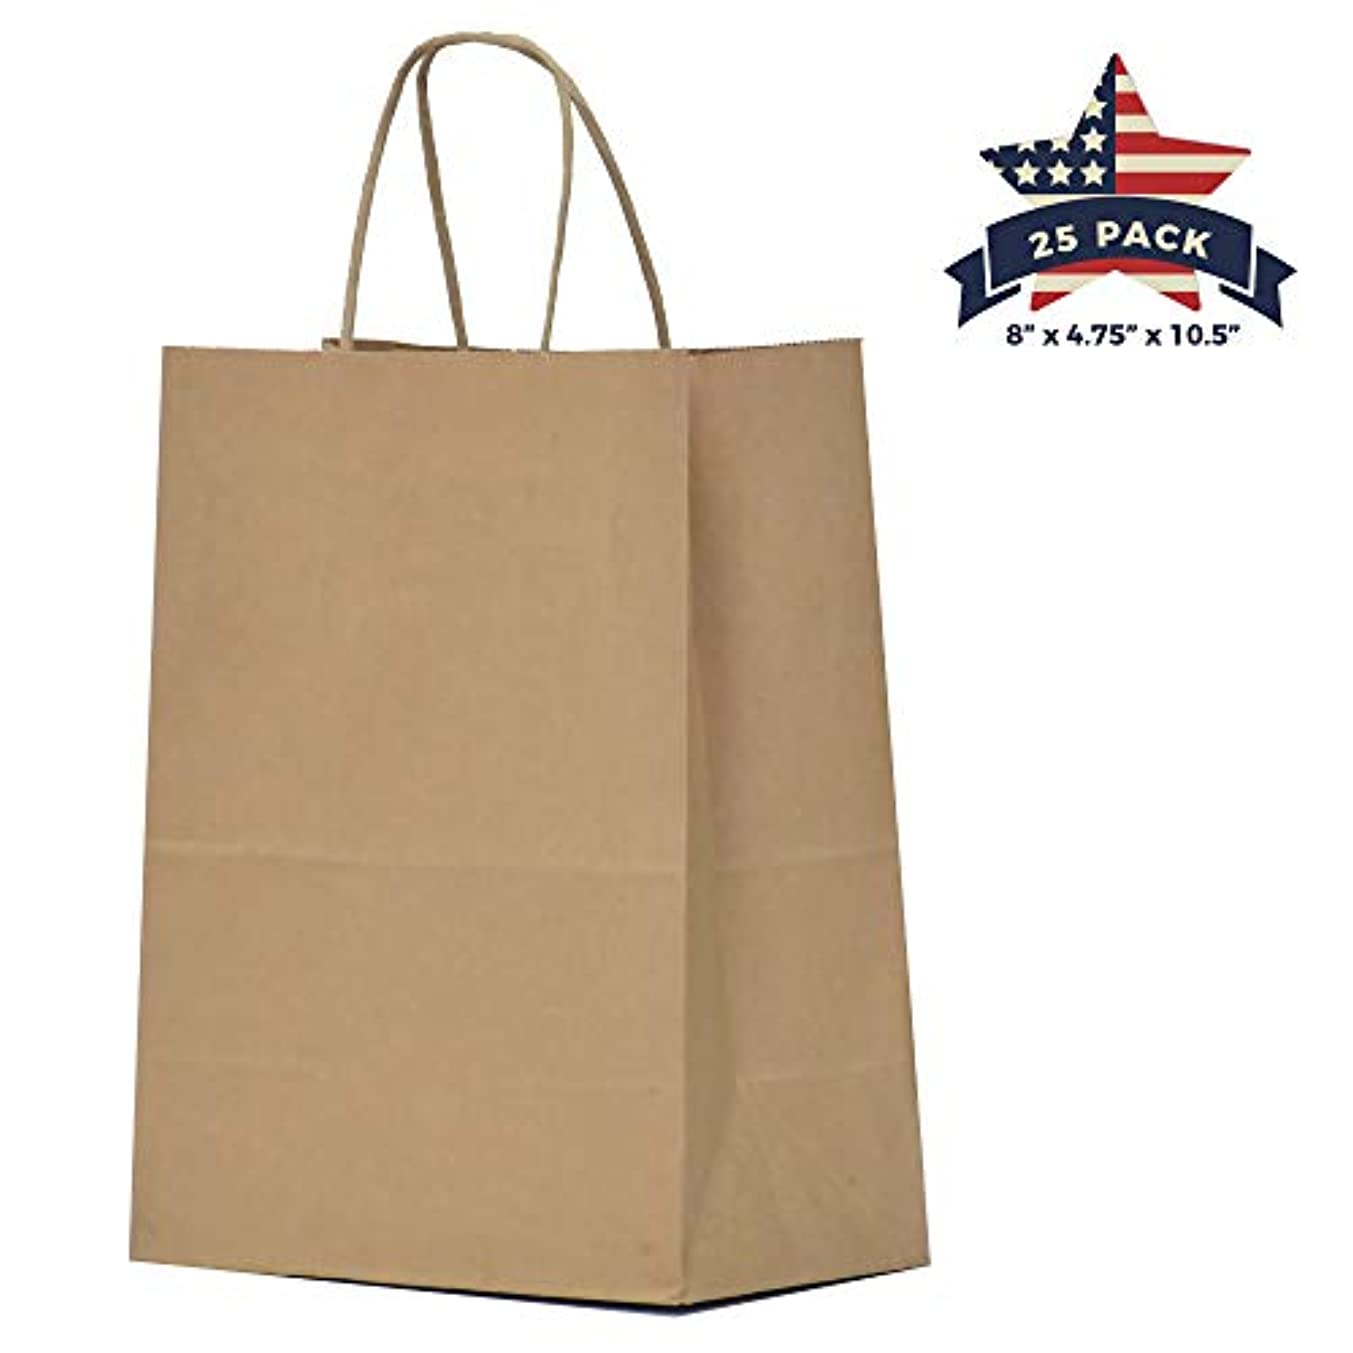 Kraft Paper Gift Bags with Handles - 25 Pcs 8x4.75x10.5 inches Brown Shopping Bags, Party Bags, Goody Bags, Cub, Favor Bags, Business Bags, Kraft Bags, Retail Bags